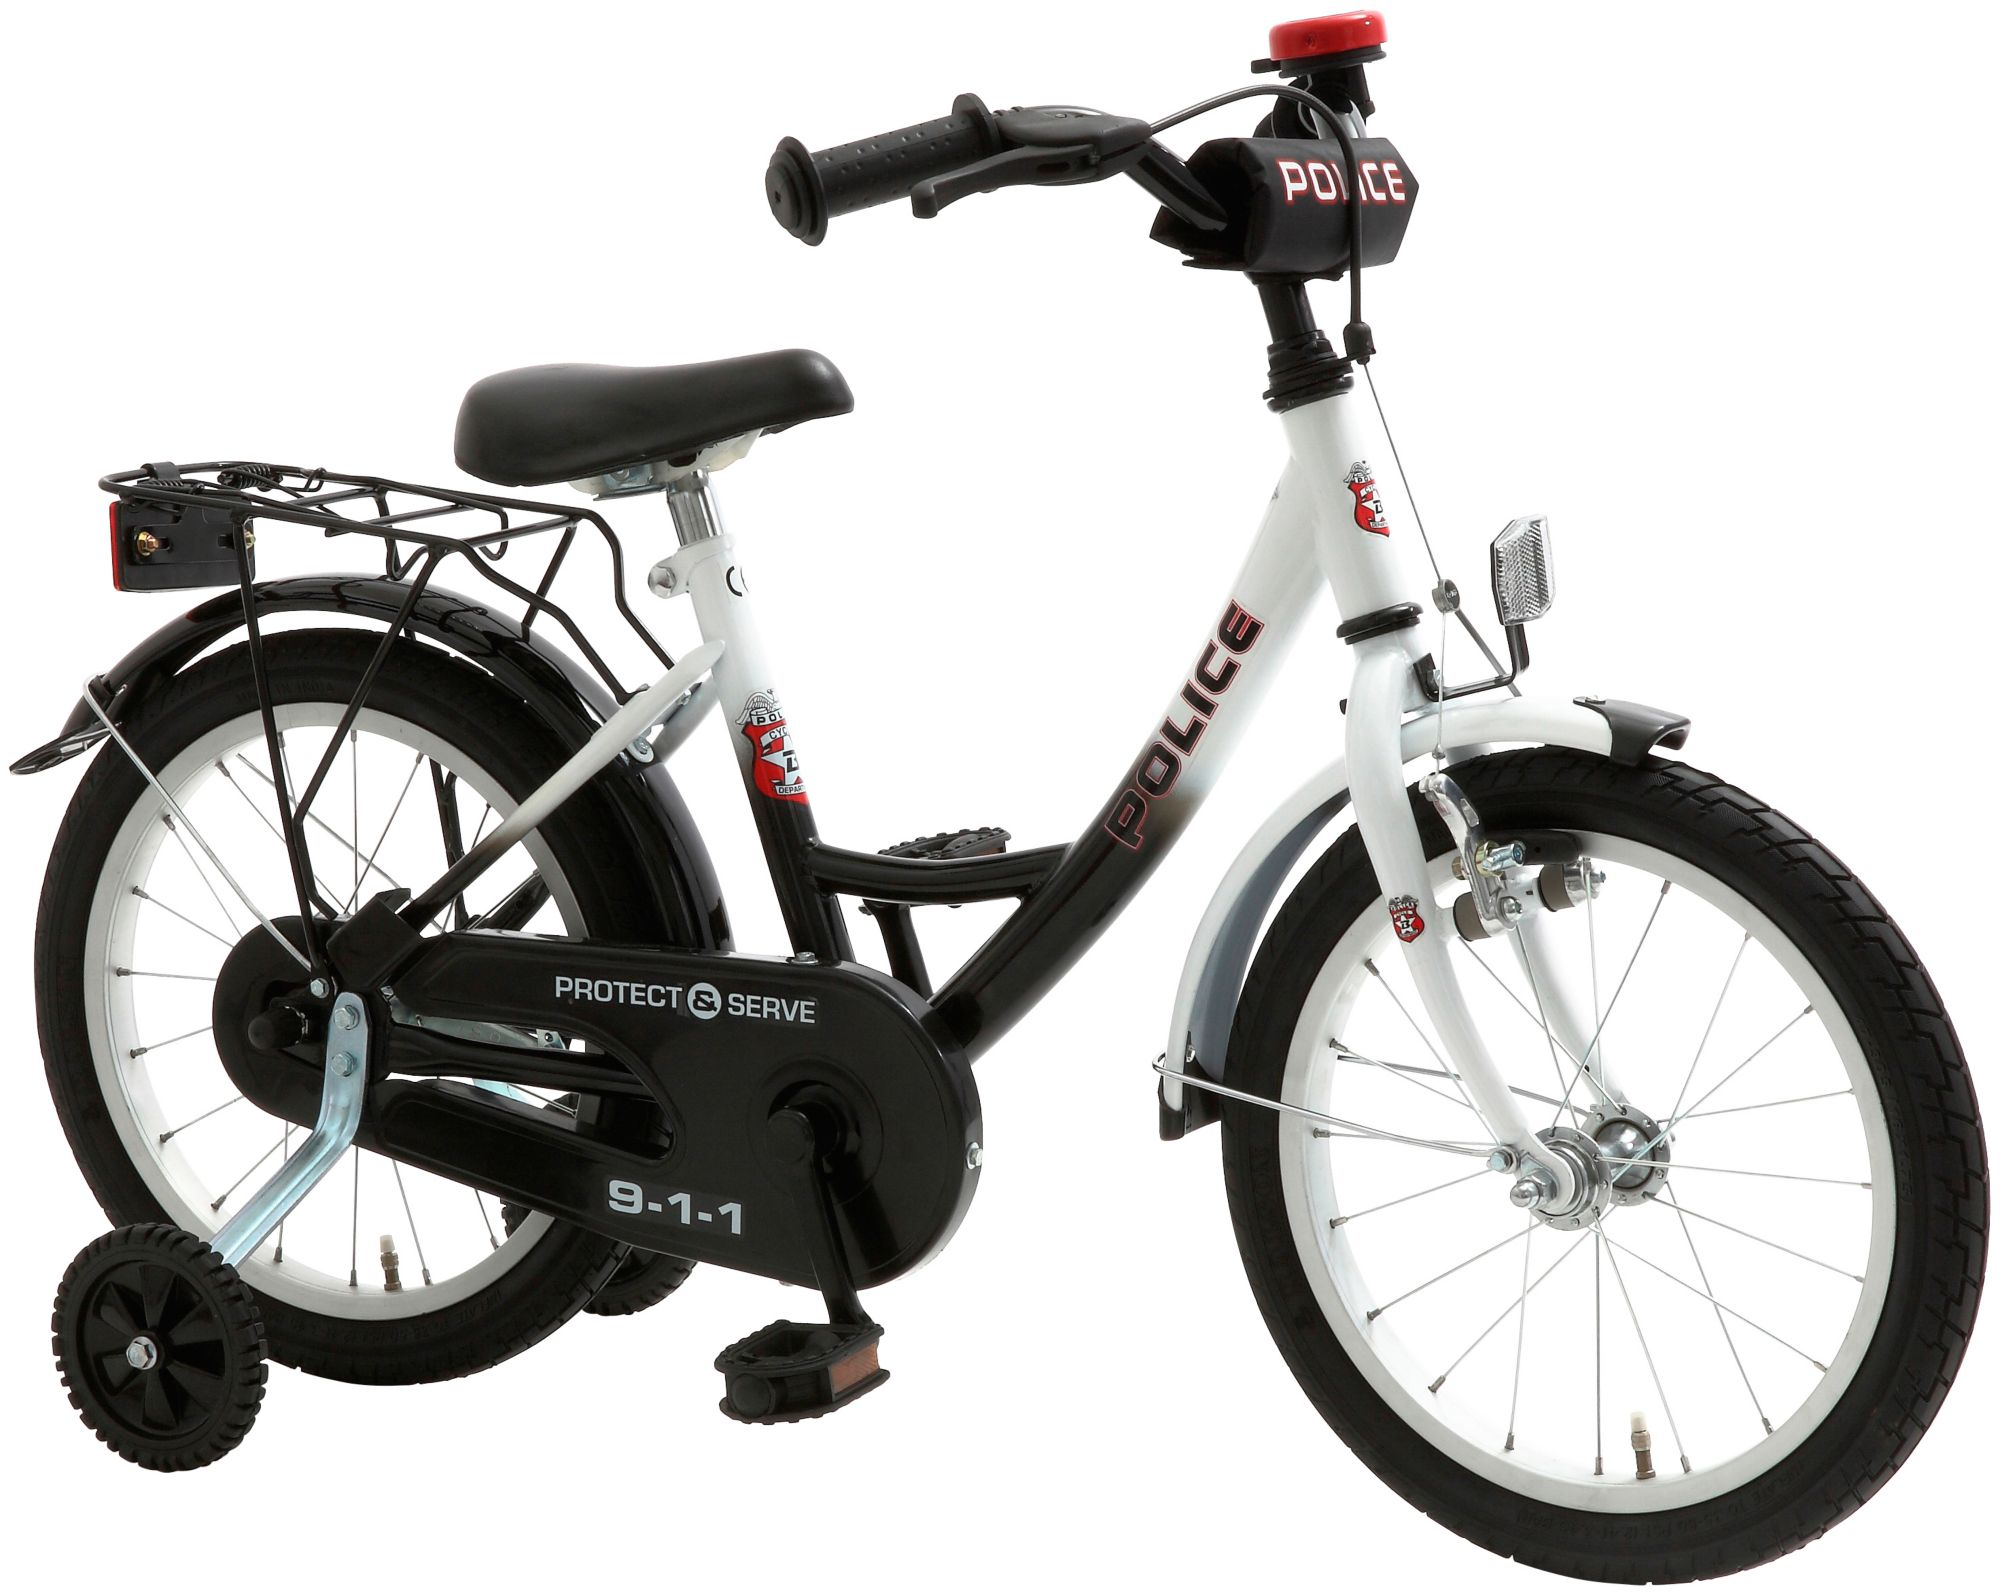 CYCLES4KIDS Cycles4Kids Kinderfahrrad »Police, 45,72 cm (18 Zoll)«